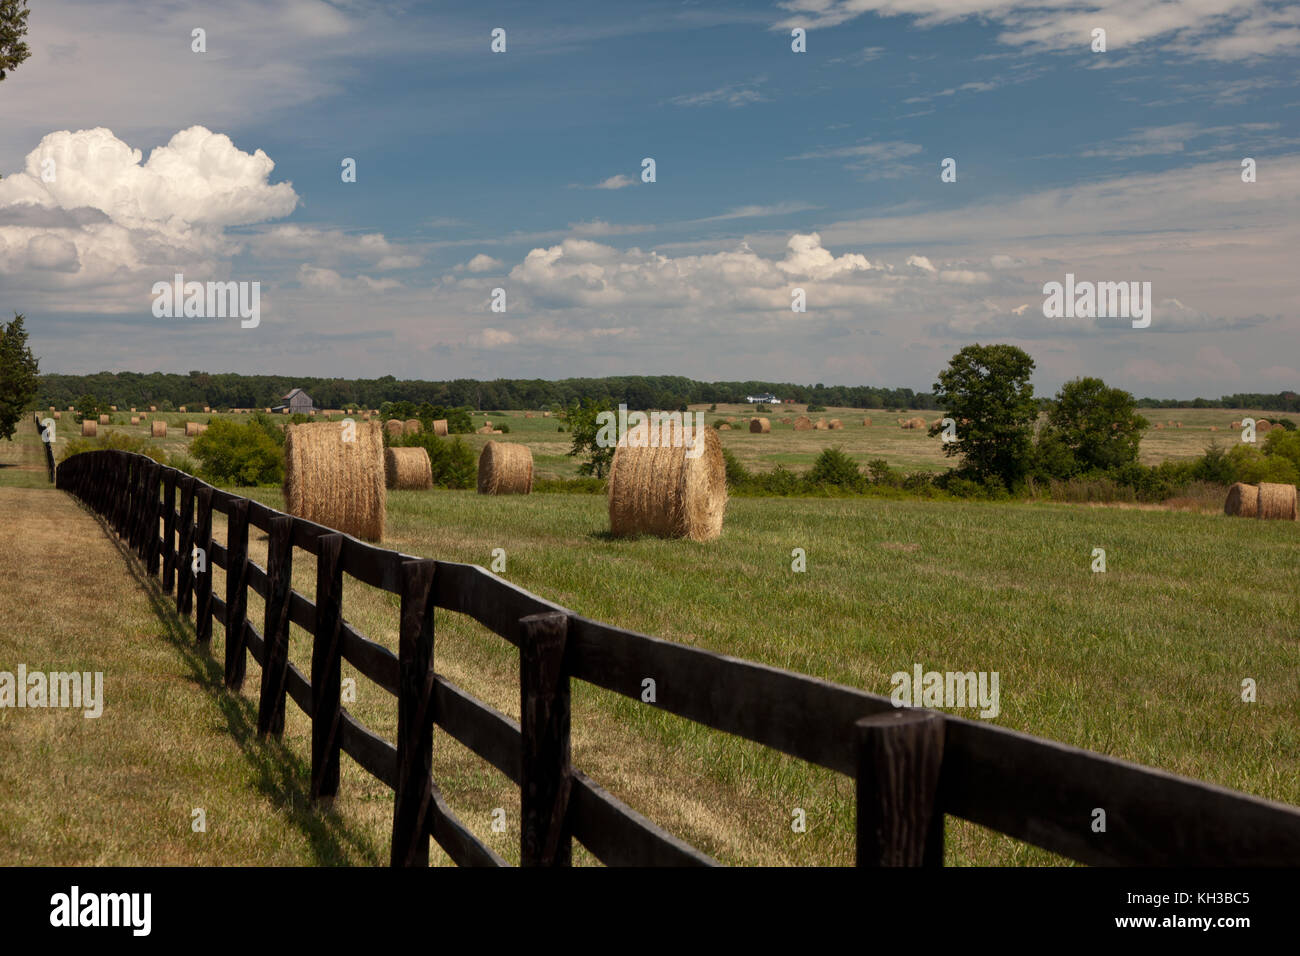 Hay bales in a field of green with blue skies - Stock Image